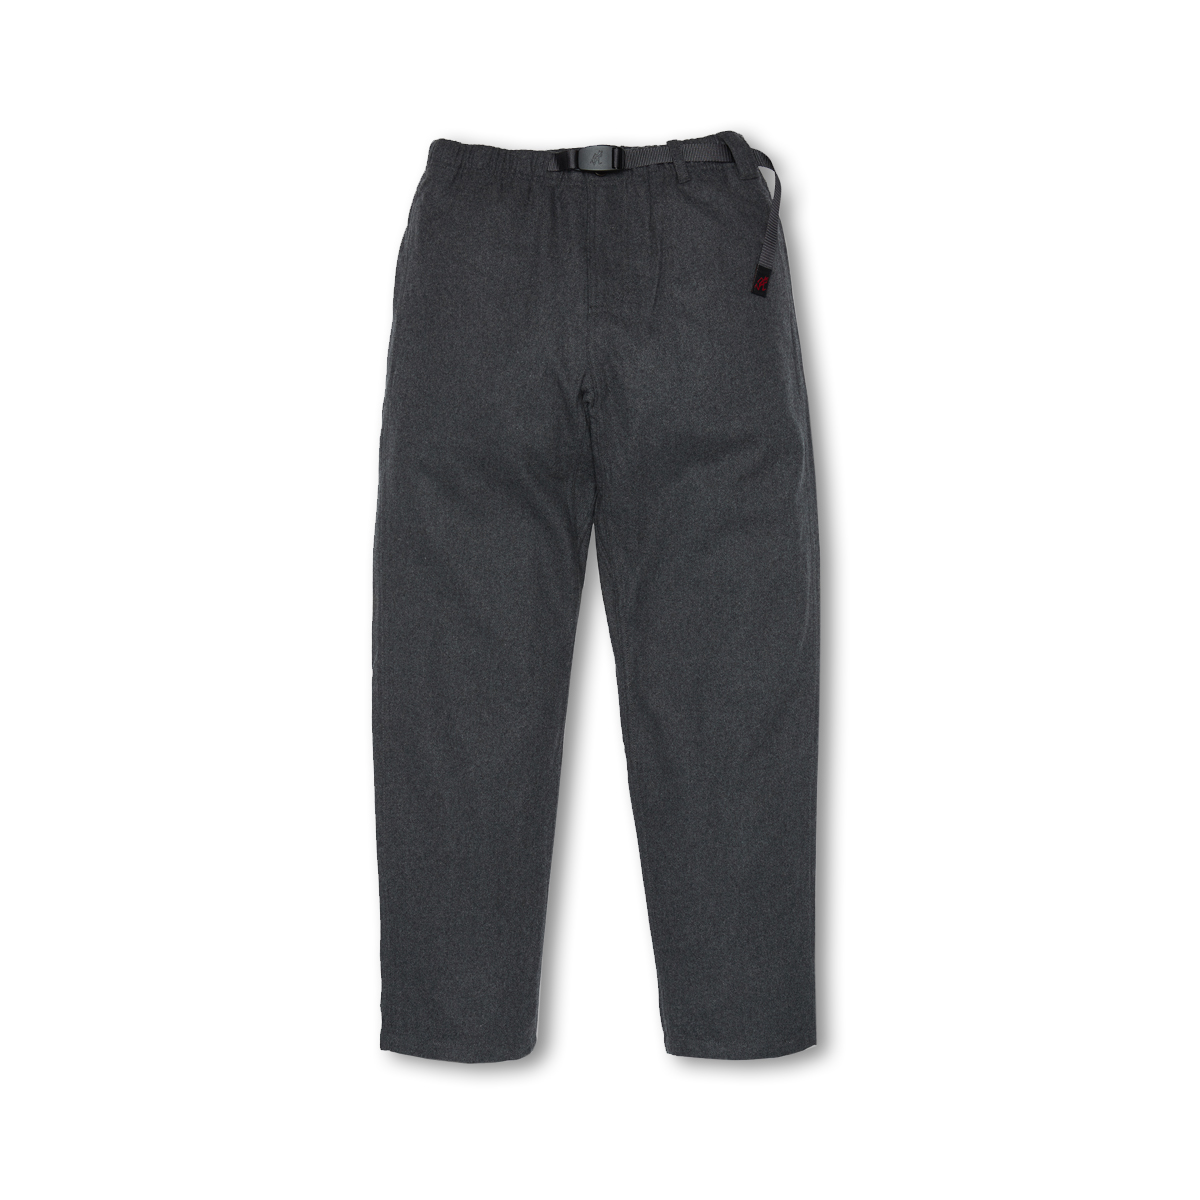 [GRAMICCI] WOOL BLEND GRAMICCI PANTS 'HEATHER CHARCOAL'